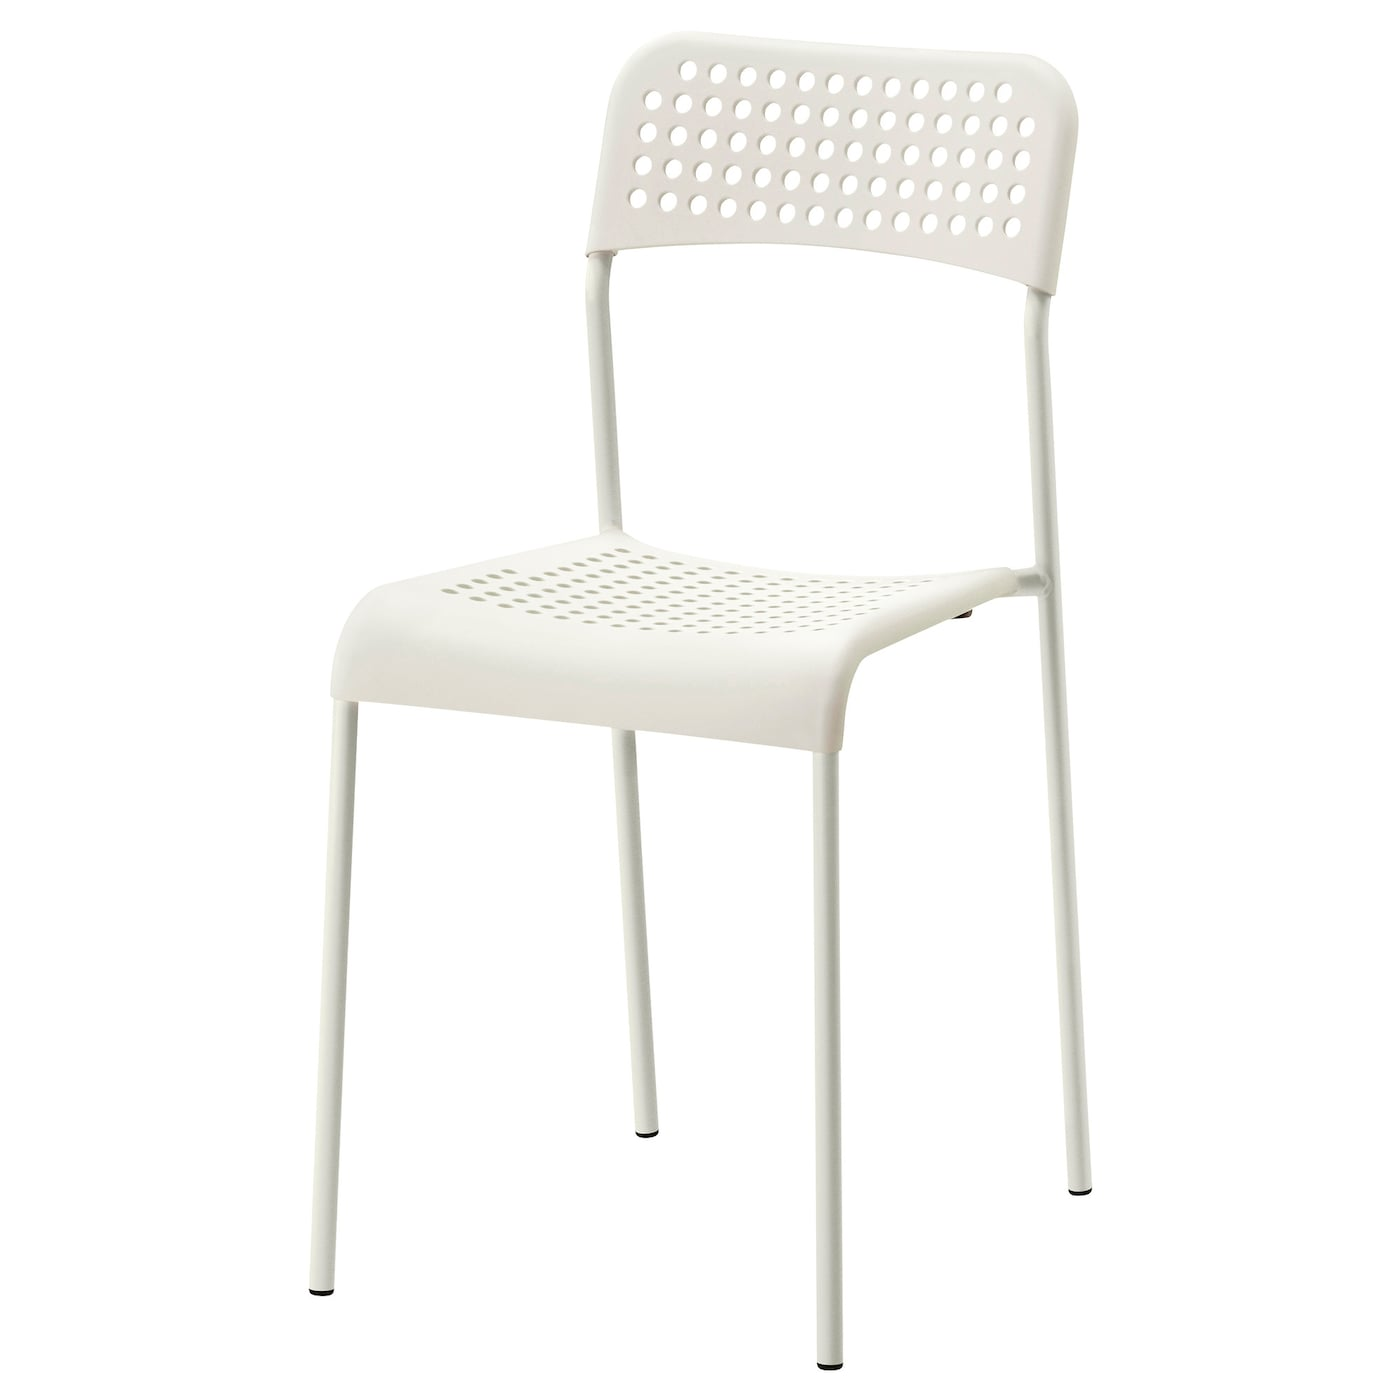 black furniture ikea. IKEA ADDE Chair You Can Stack The Chairs So They Take Less Space When Black Furniture Ikea